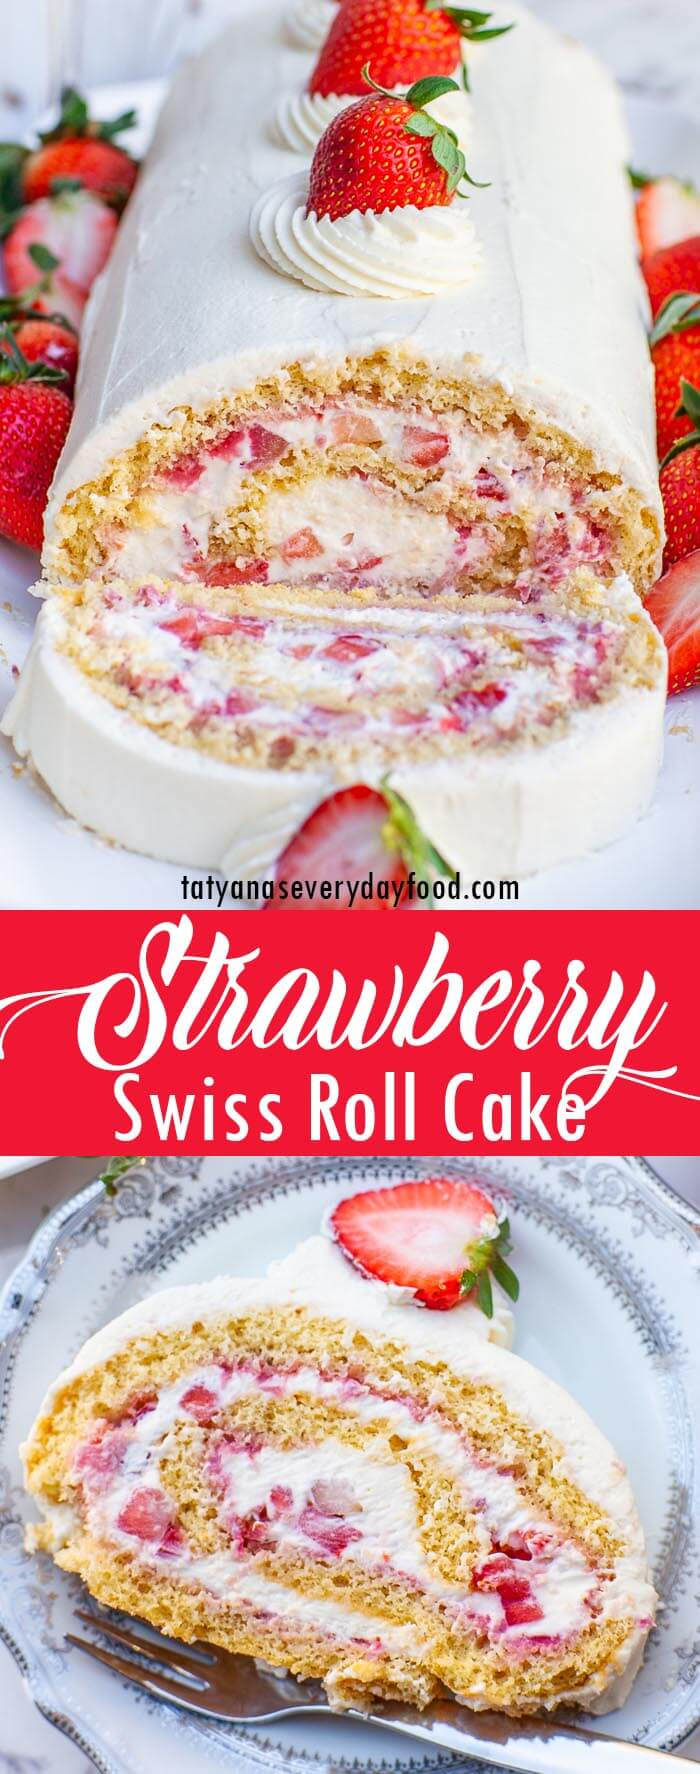 Strawberry Swiss Roll Cake video recipe